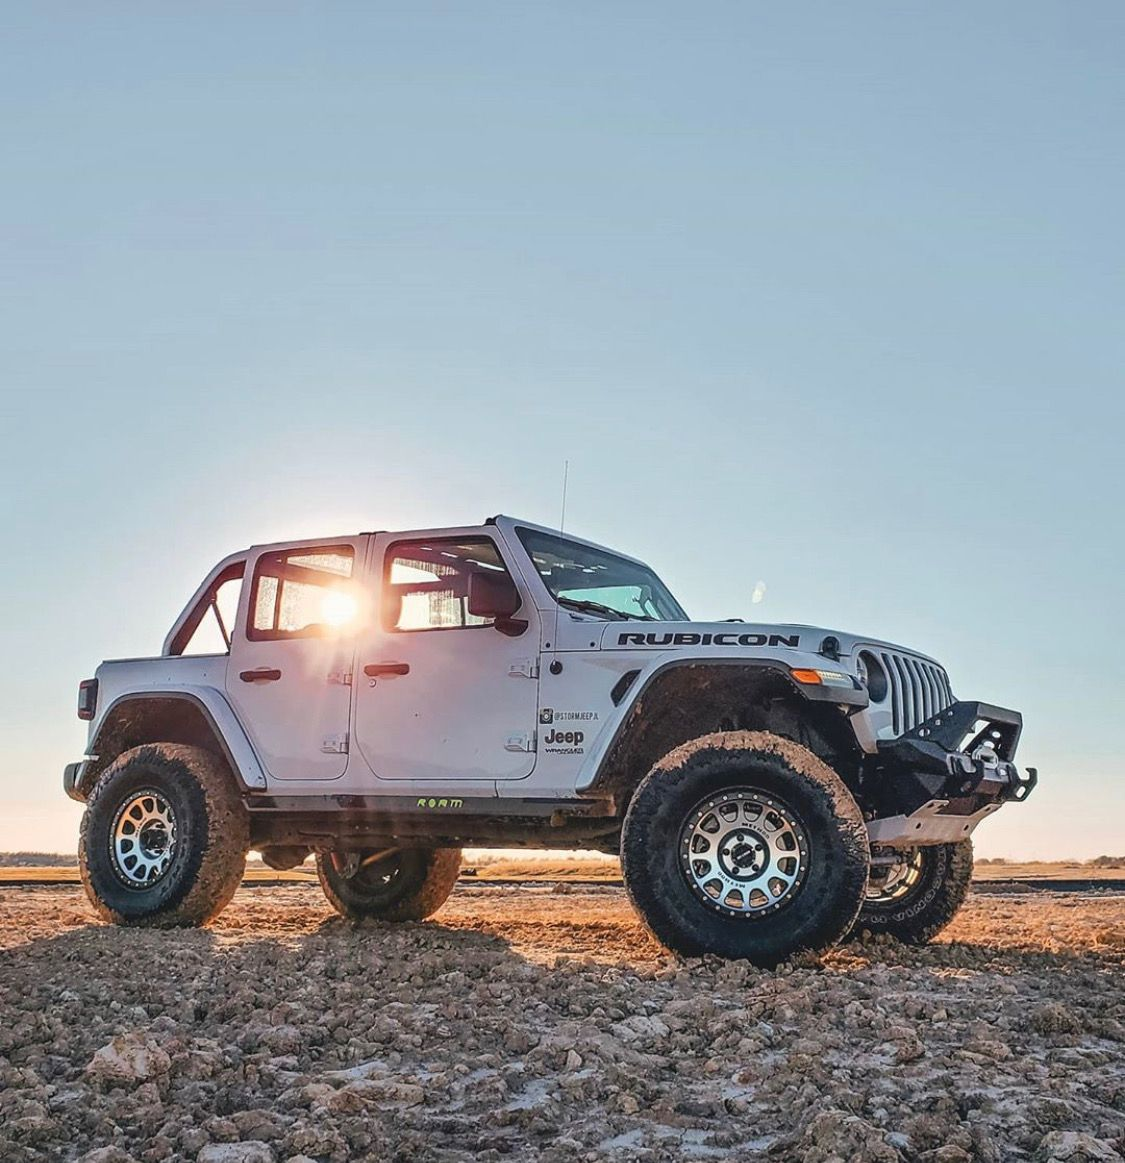 Lifted Jeep Wrangler Rubicon Jl In 2020 Jeep Wrangler Rubicon Lifted Jeep Jeep Wrangler